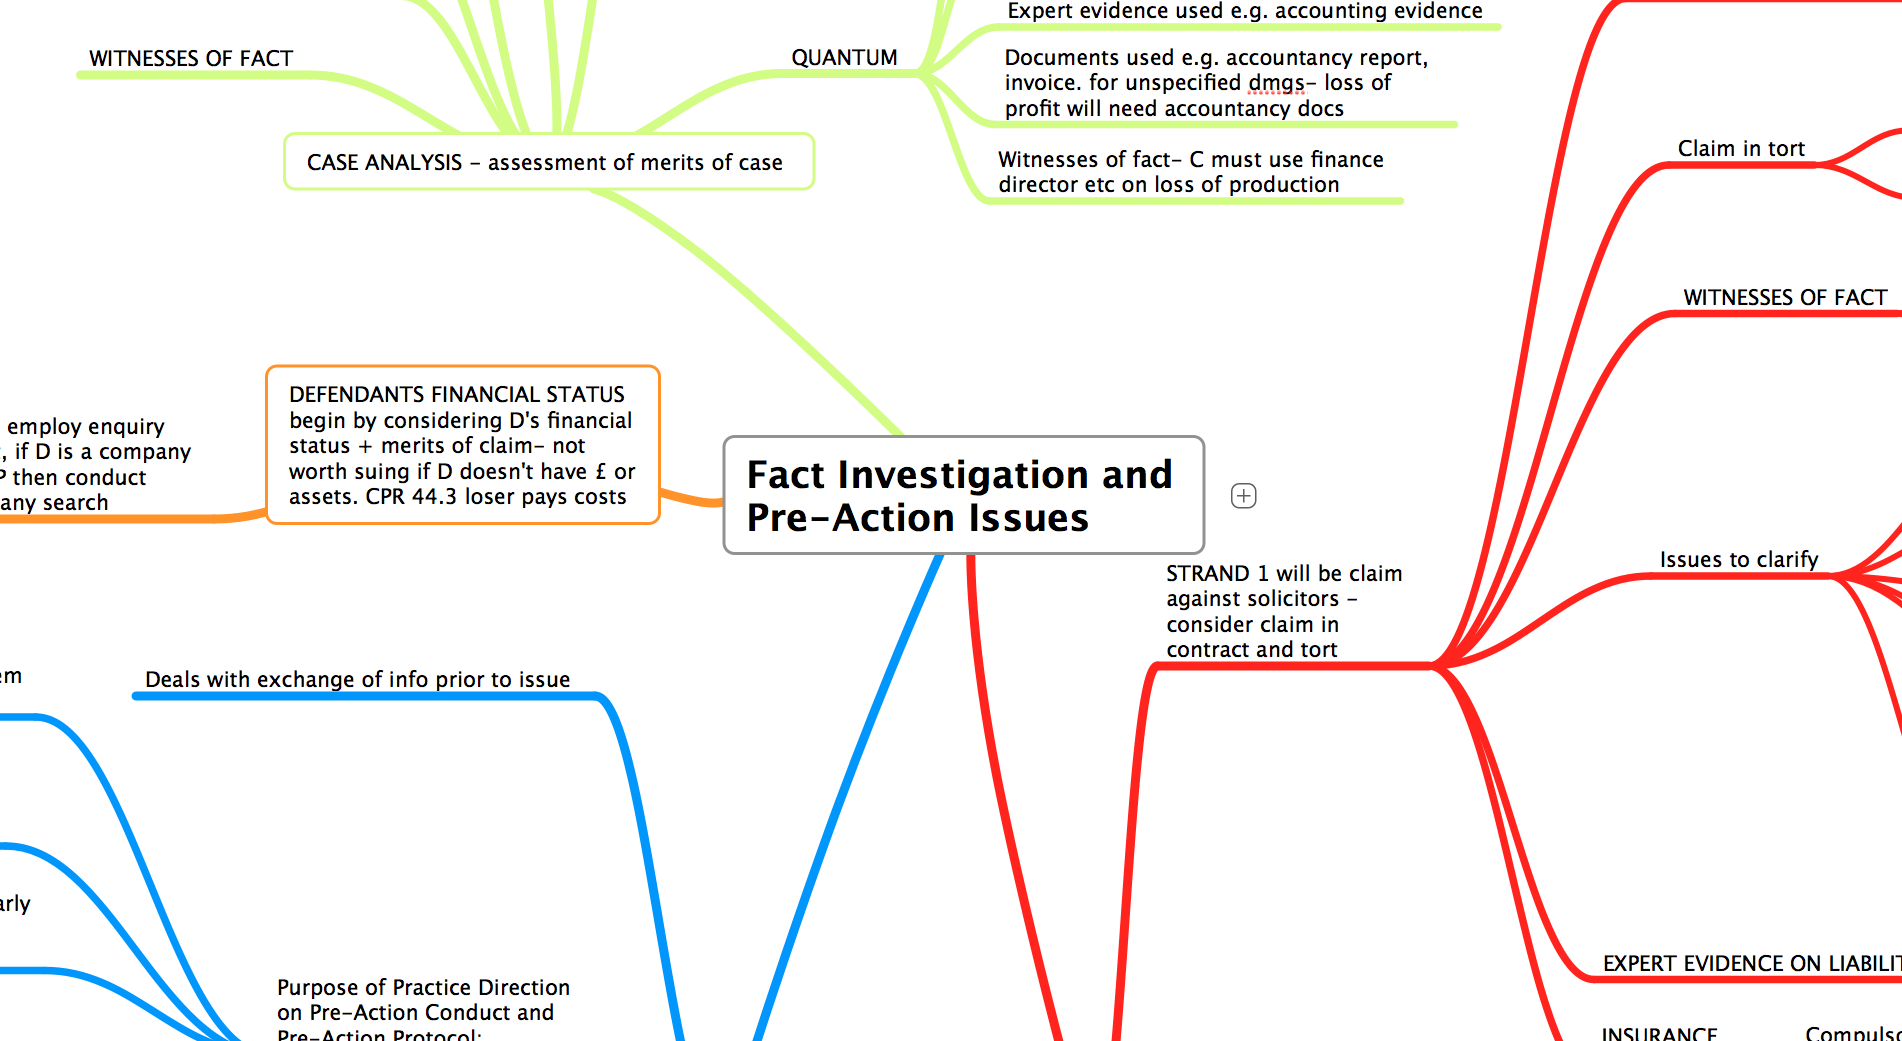 FACT INVESTIGATION, PRE-ACTION ISSUES